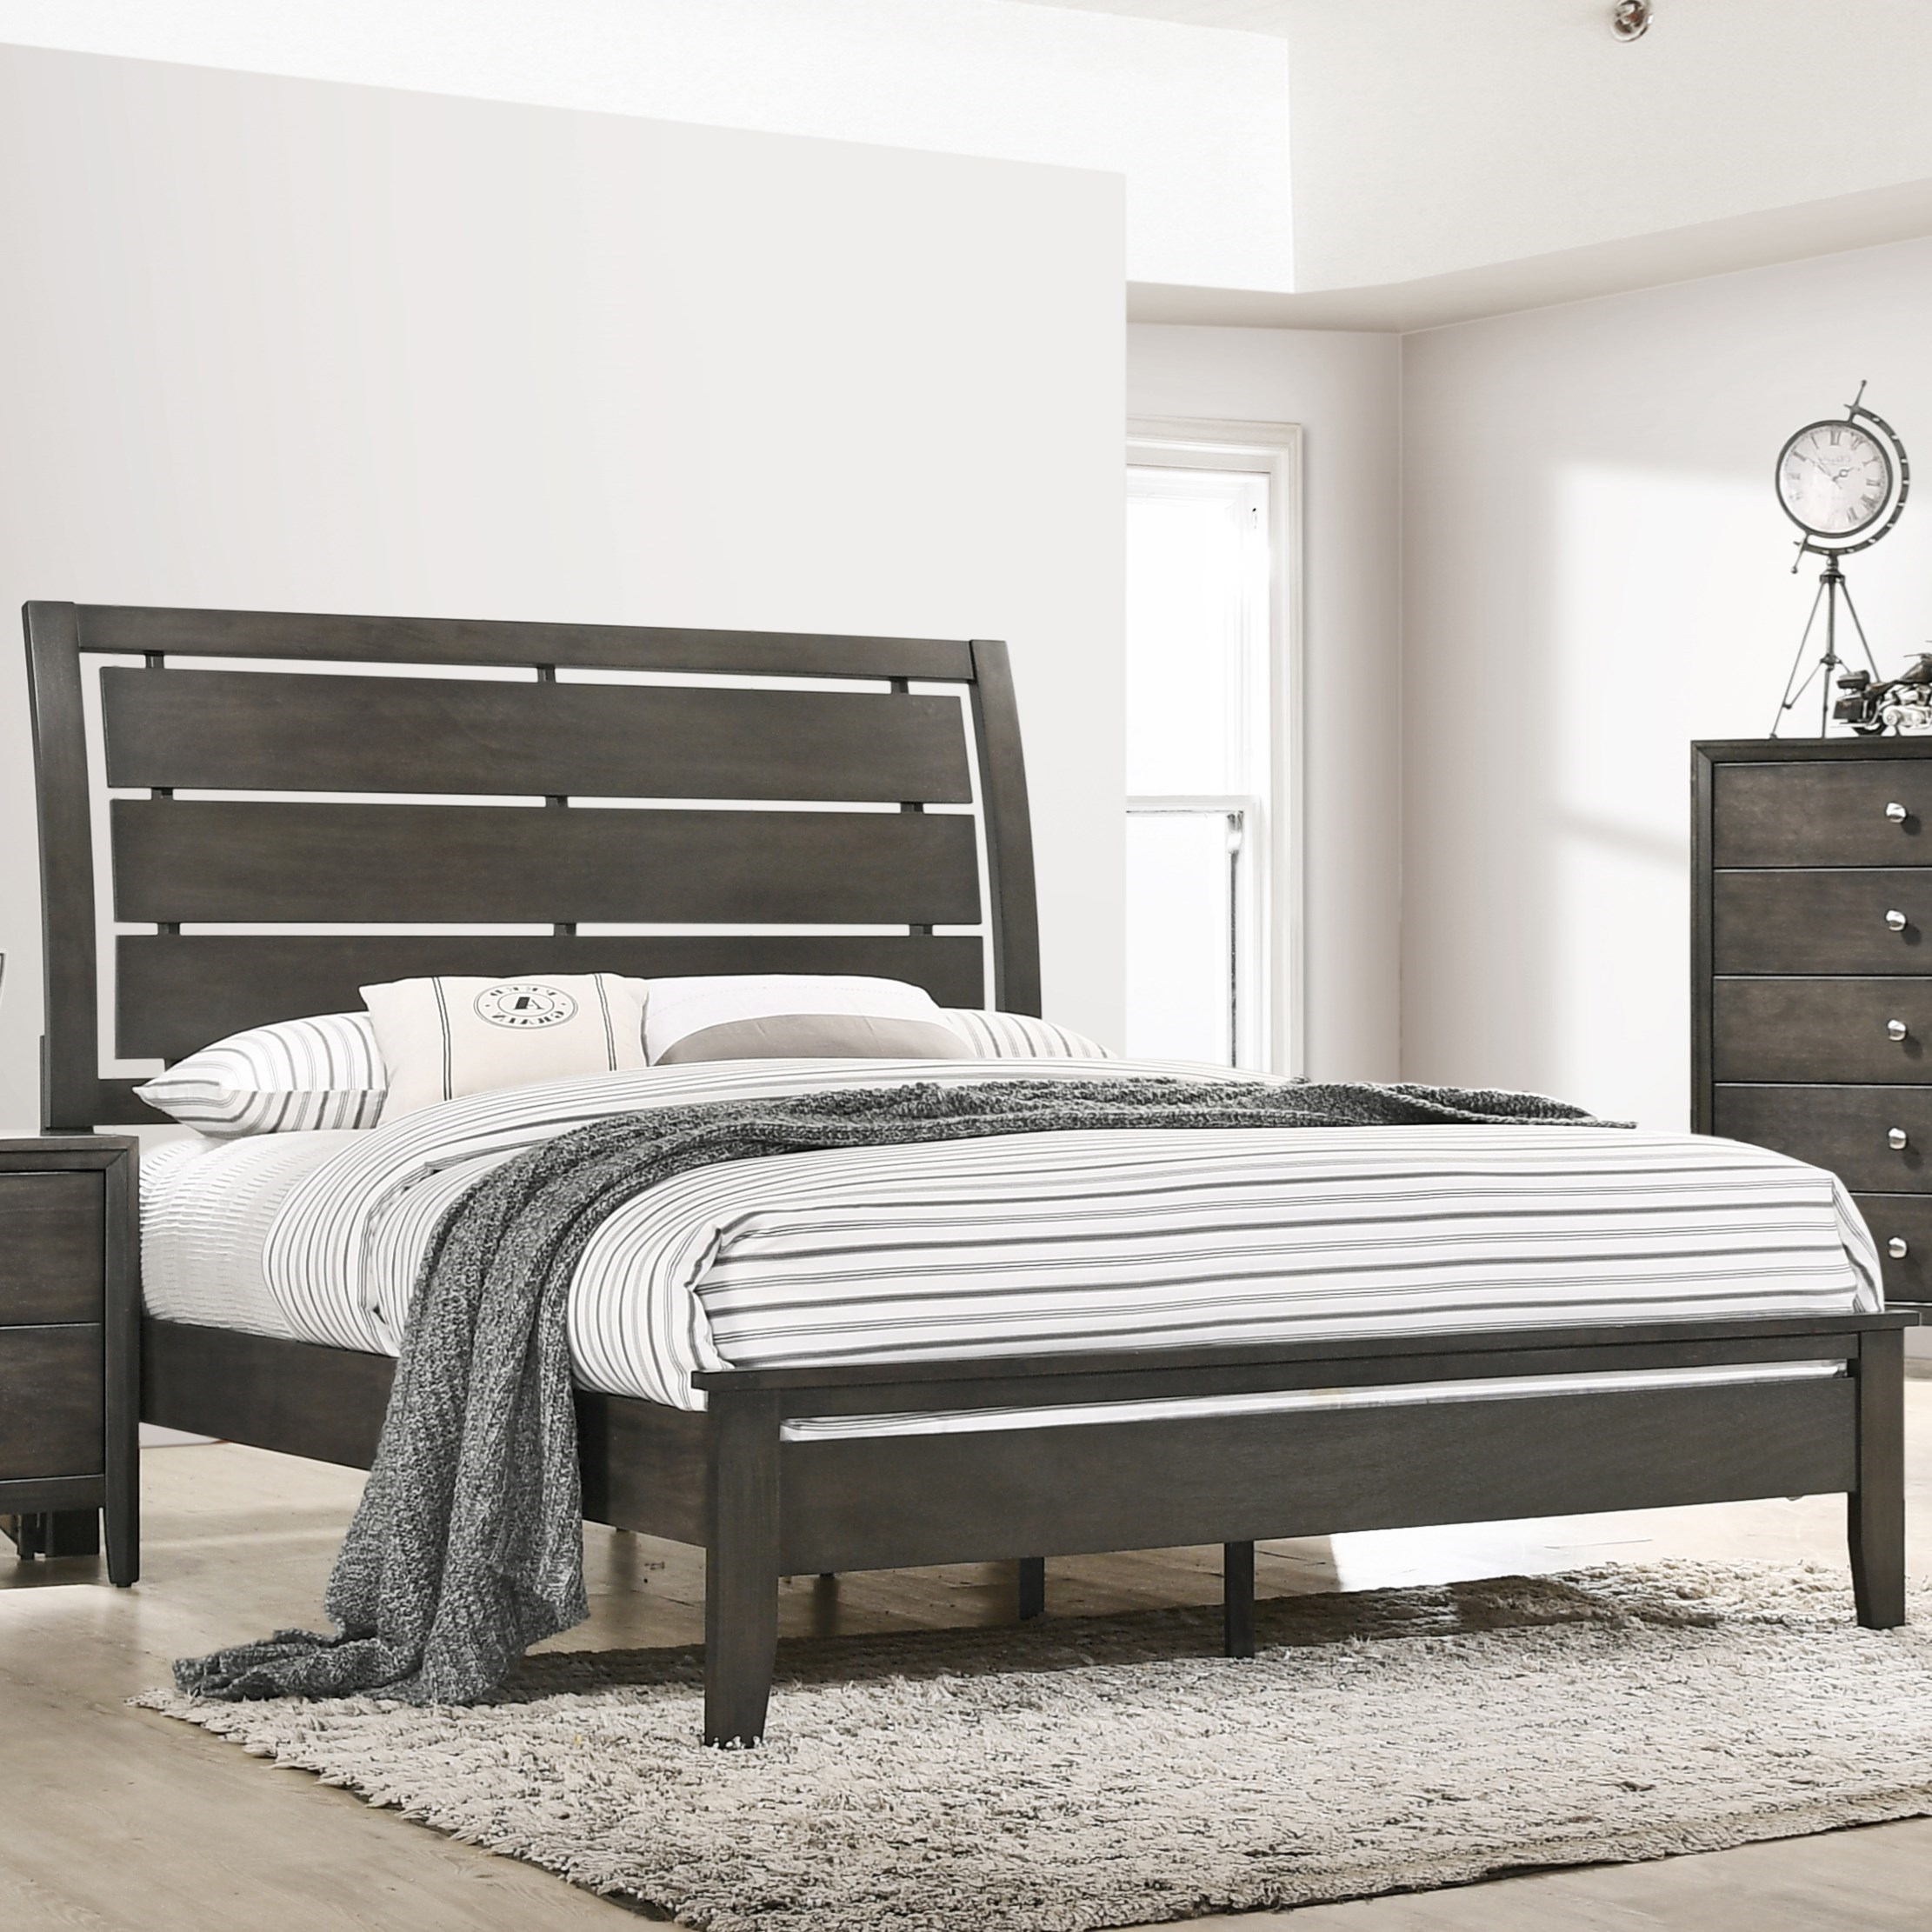 Grant Twin Bed by Lane at Story & Lee Furniture